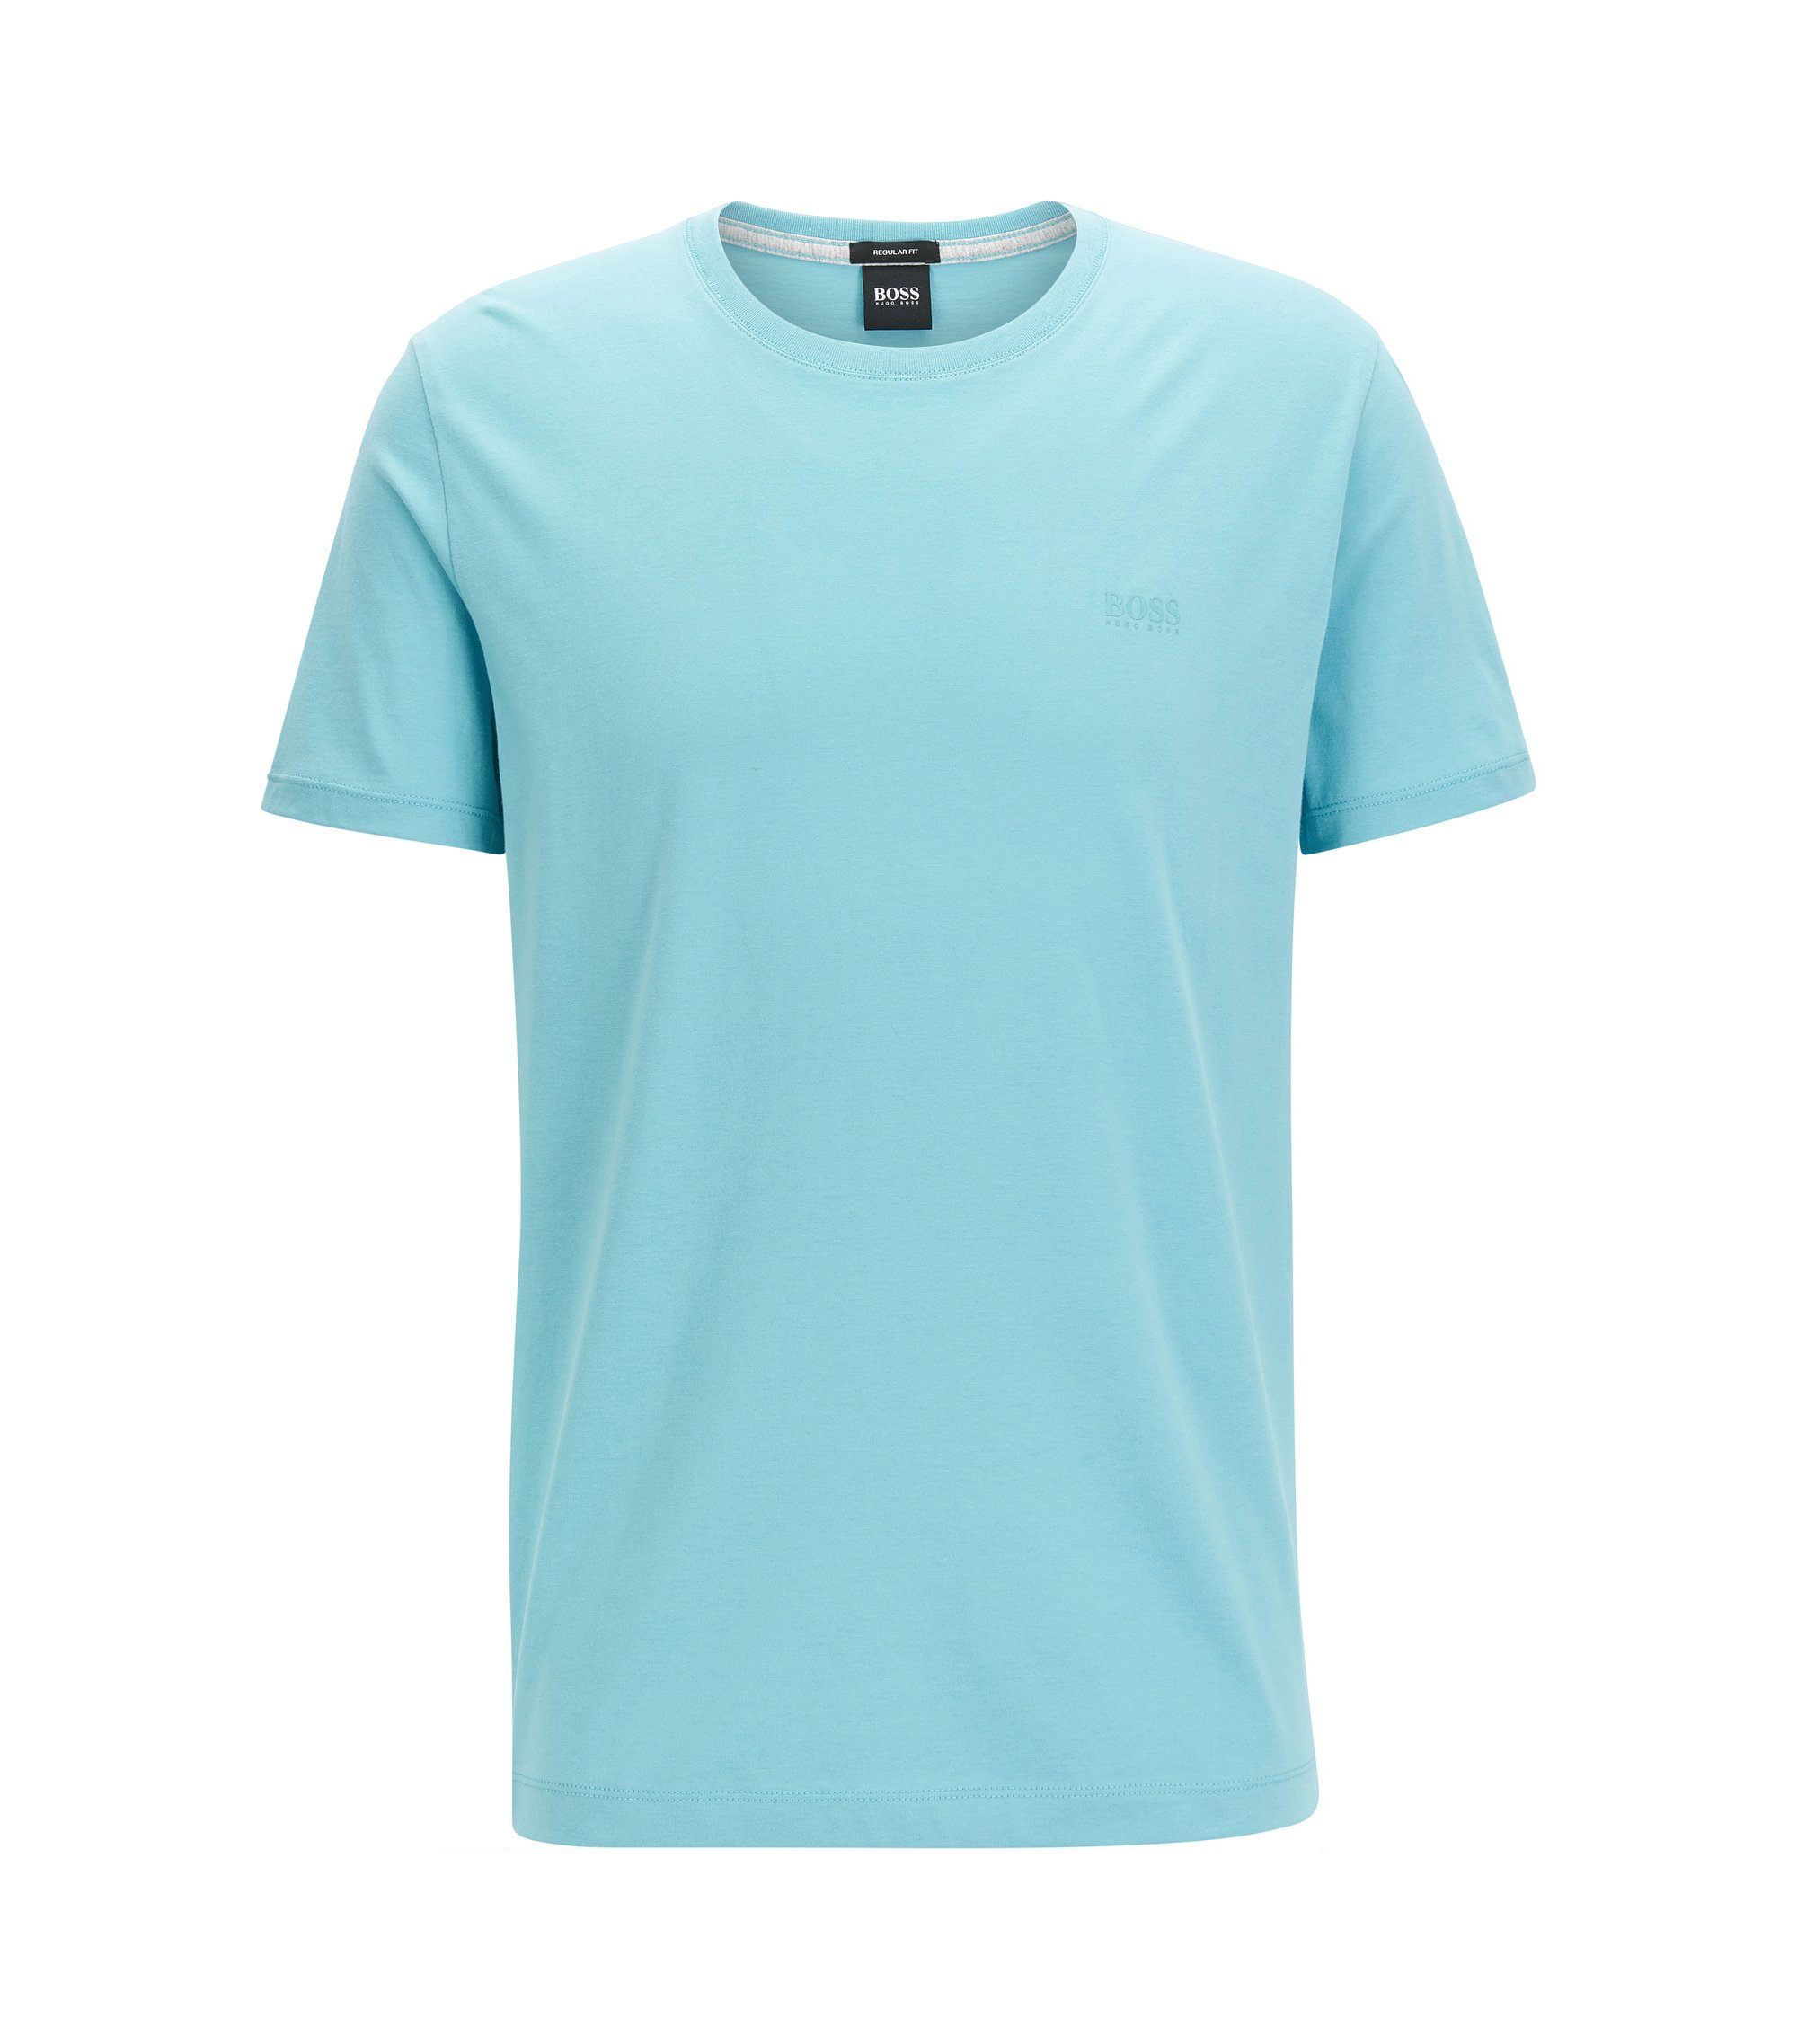 T-shirt Regular Fit en coton doux, Bleu vif